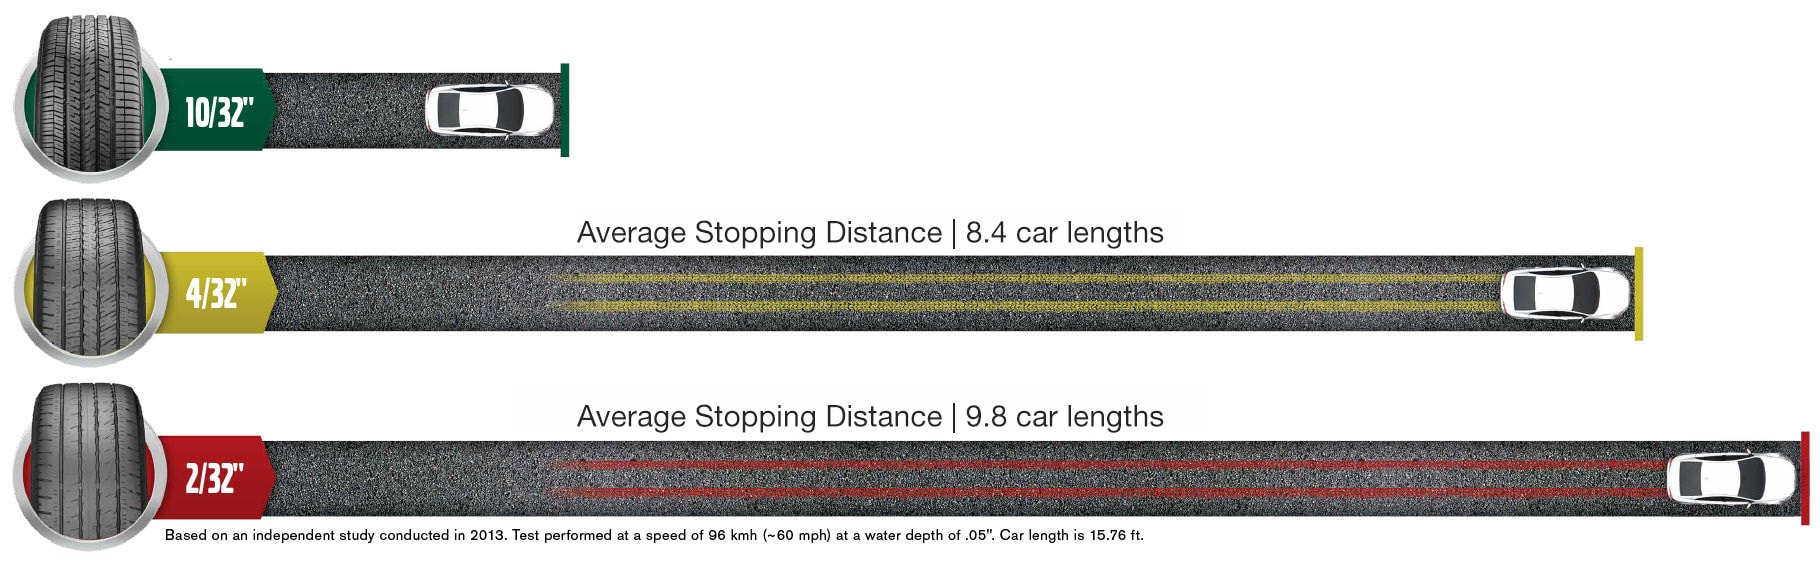 Volvo Tire Advantage at Culver City Volvo Cars - Average Stopping Distance